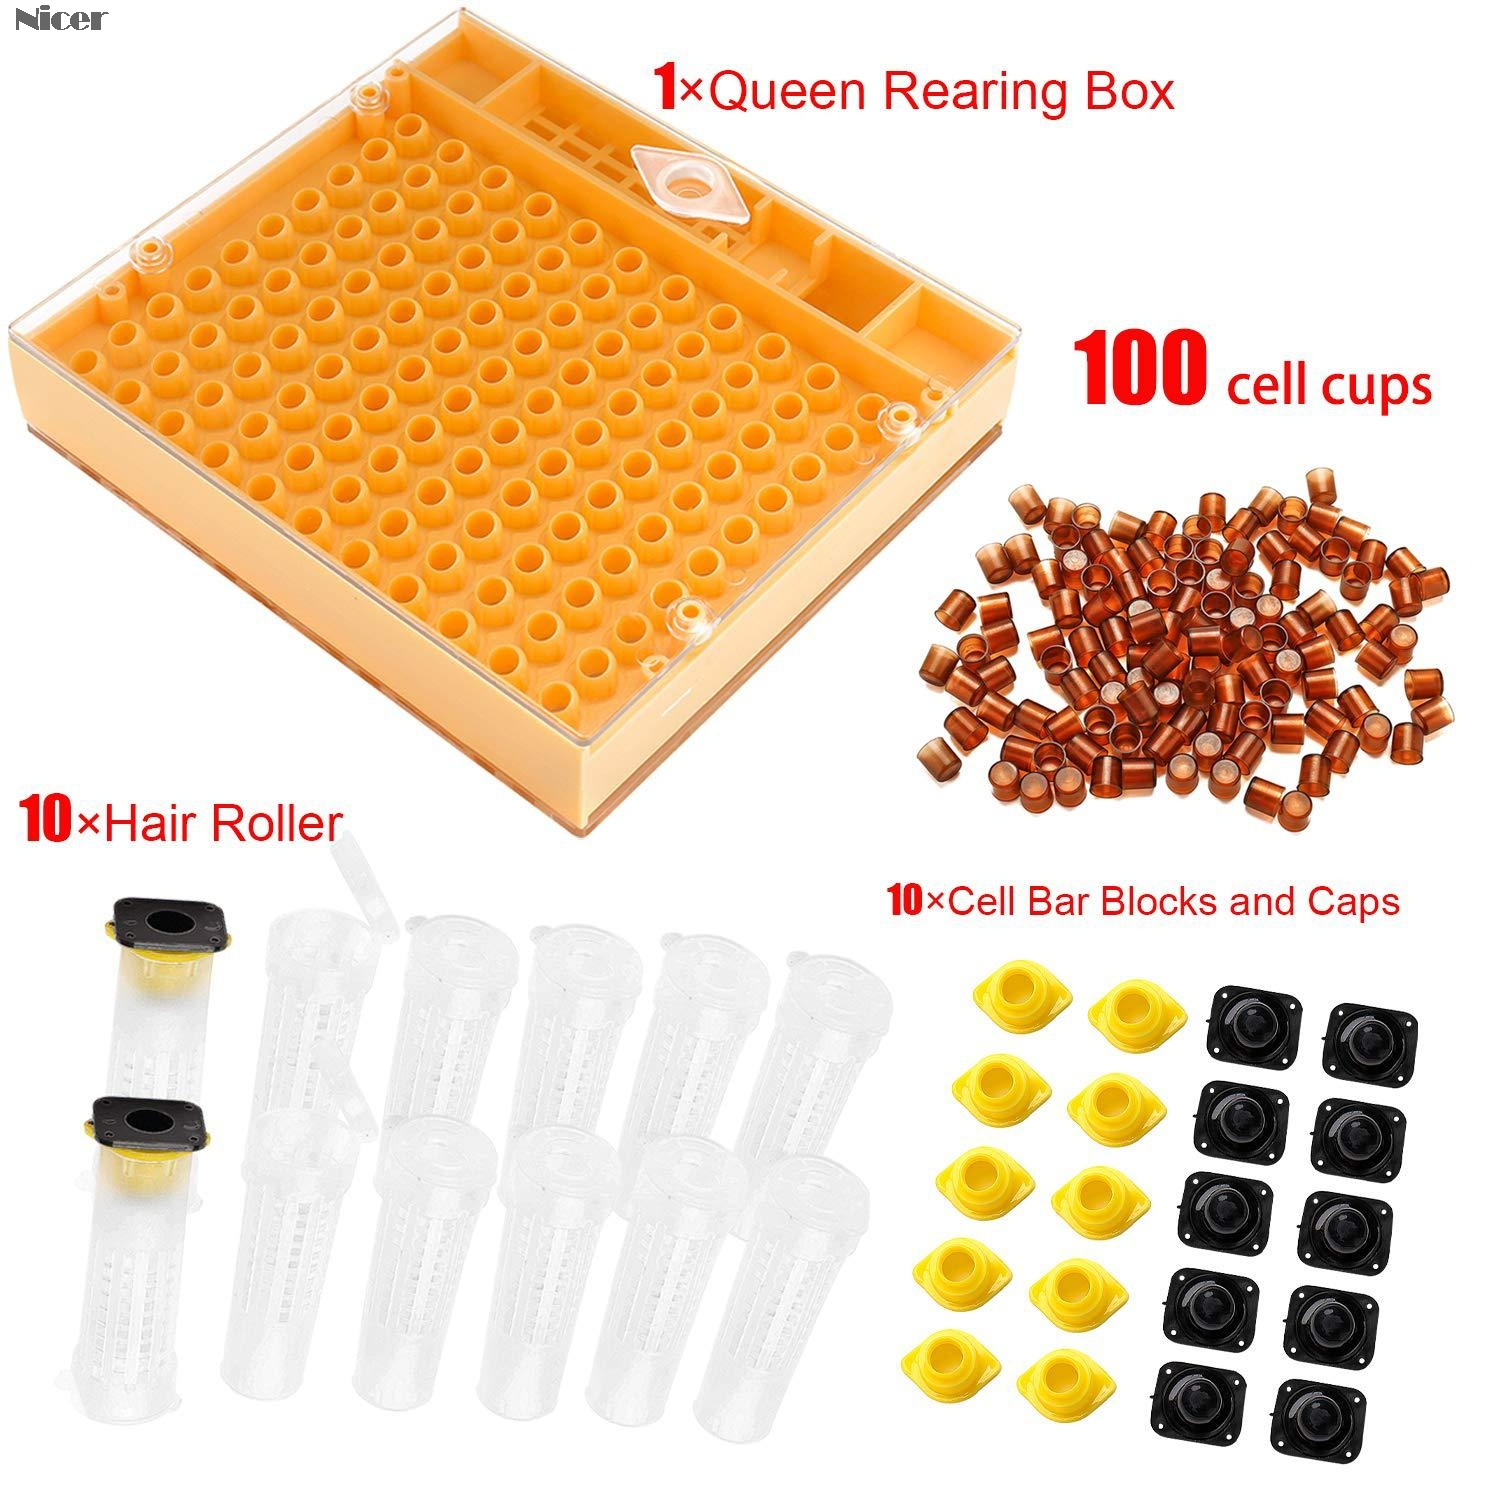 Complete queen rearing cup kit system bee beekeeping catcher box /& 100 cell/'cups